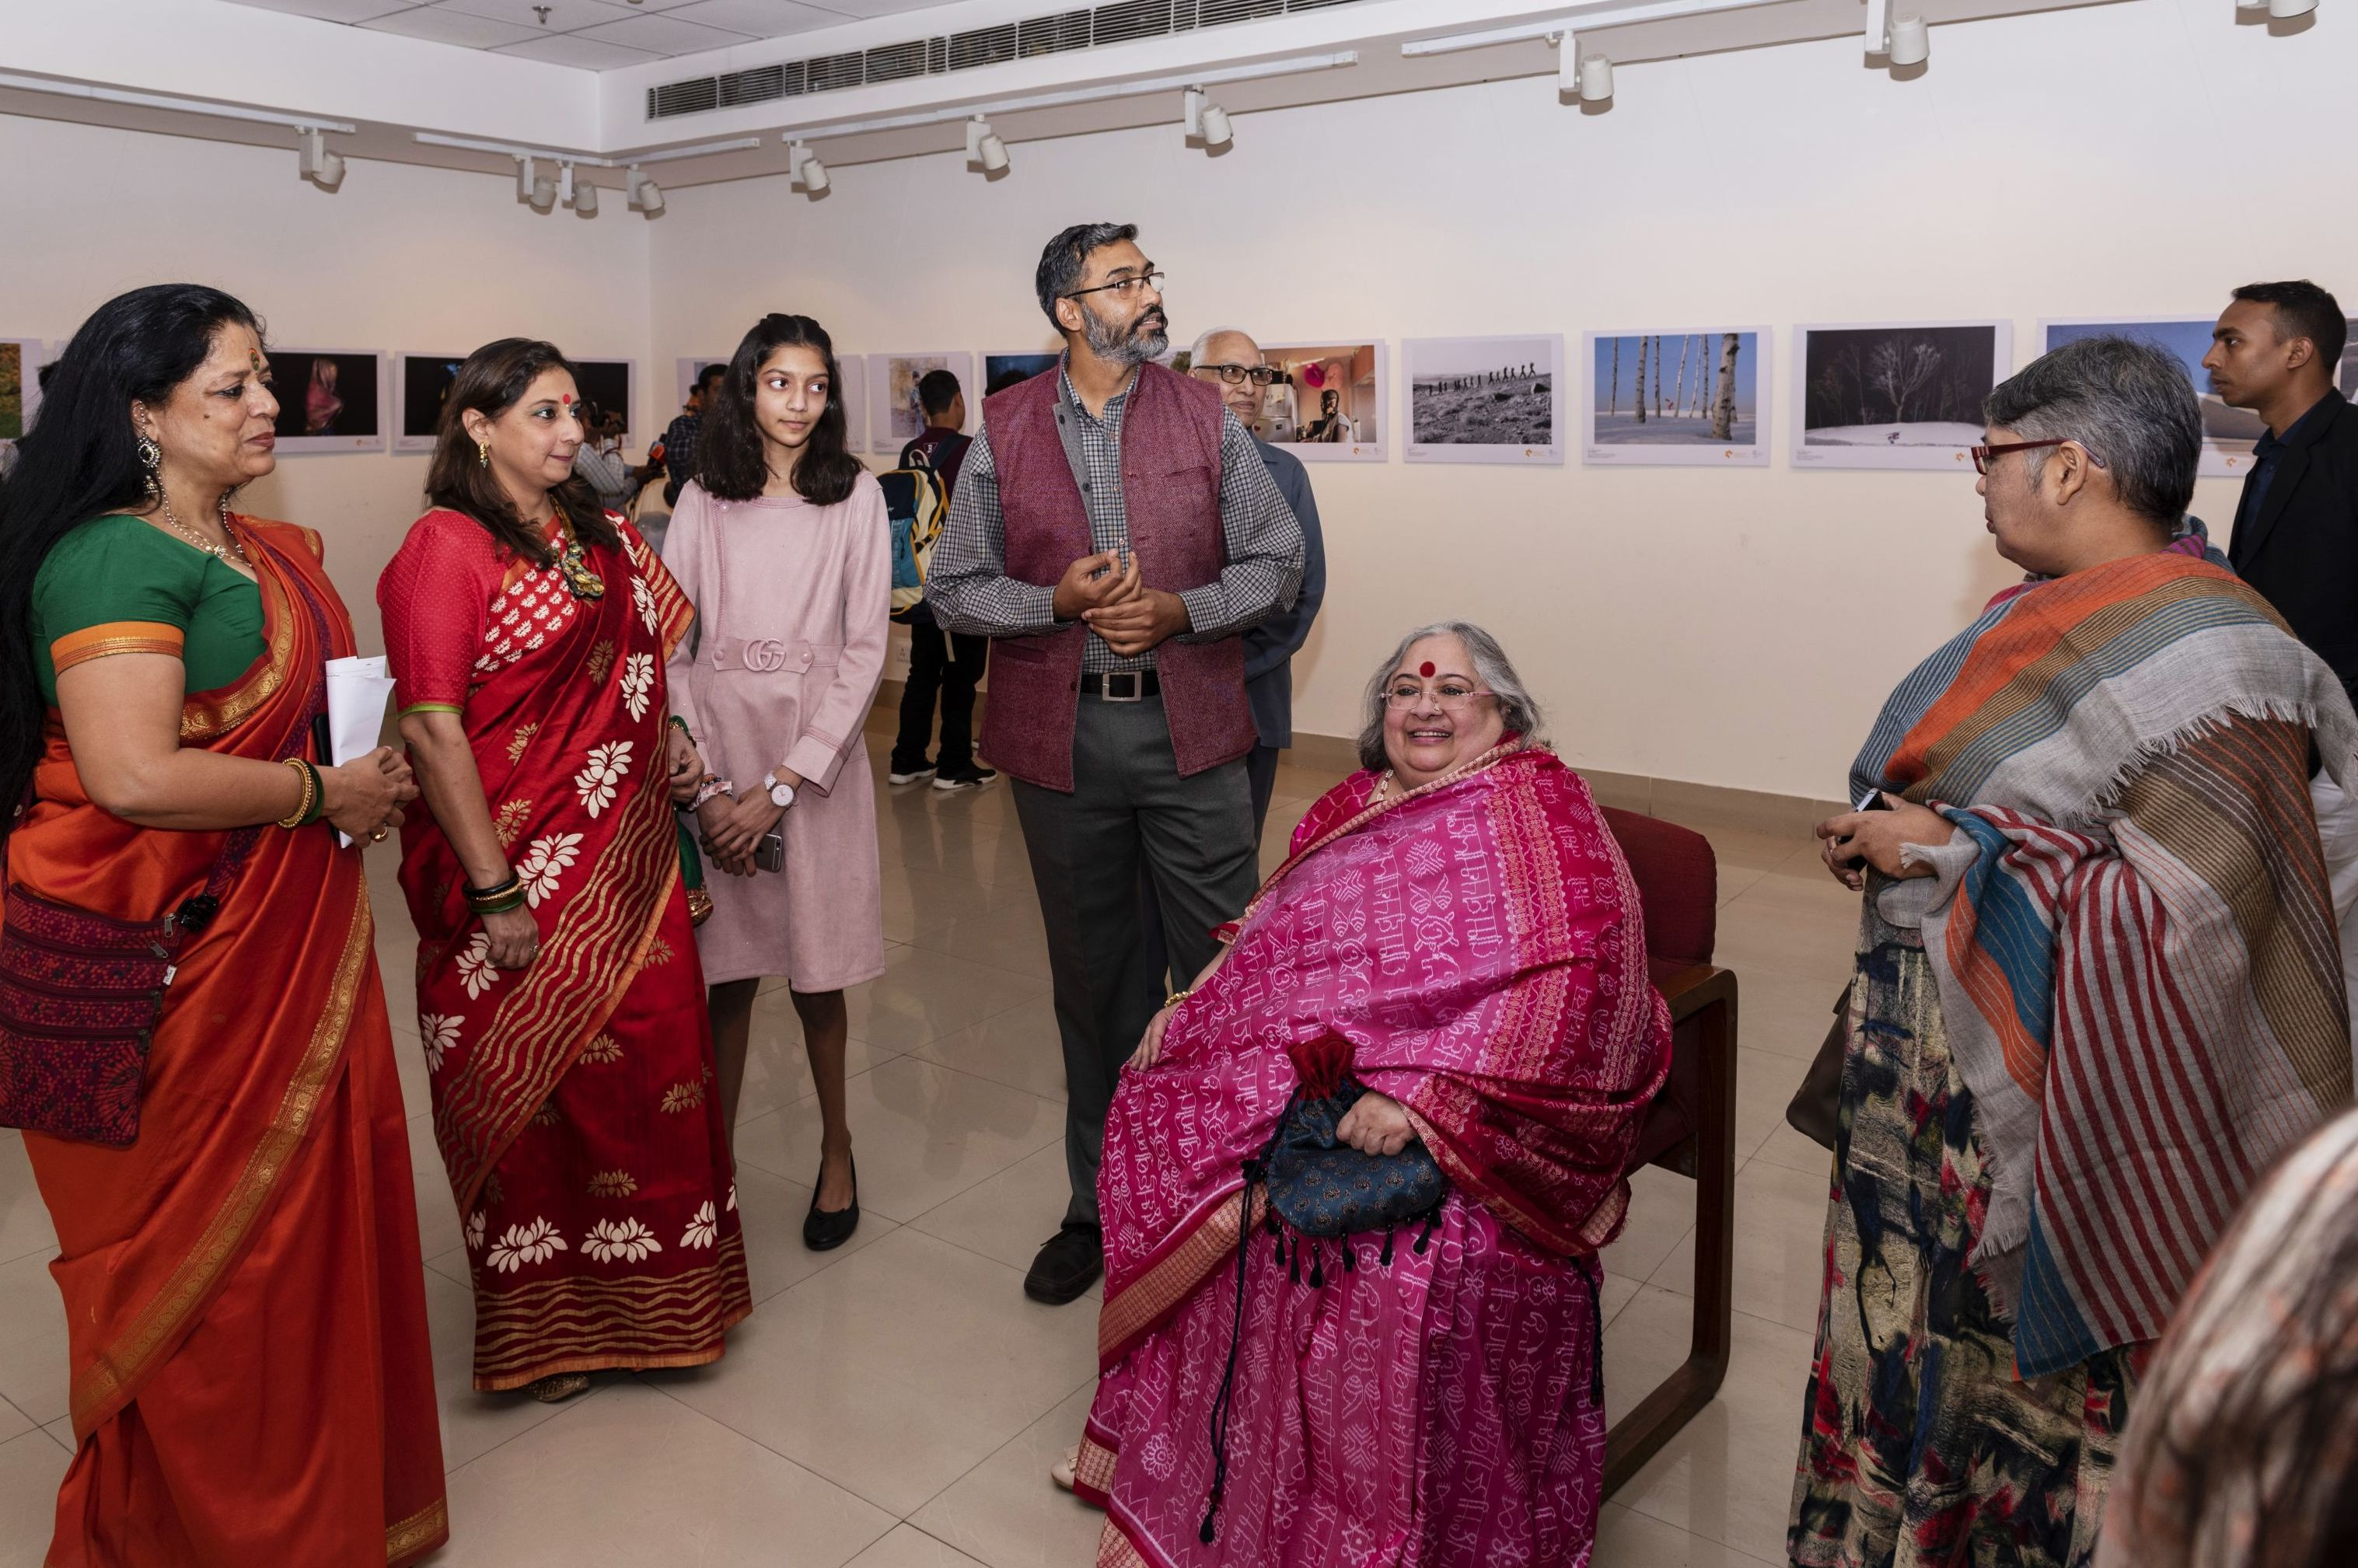 Painter, designer, art curator Alka Raghuvanshi (in the middle) at the winners exhibition of the Andrei Stenin International Photo Contest at the AIFACS Gallery in New Delhi.